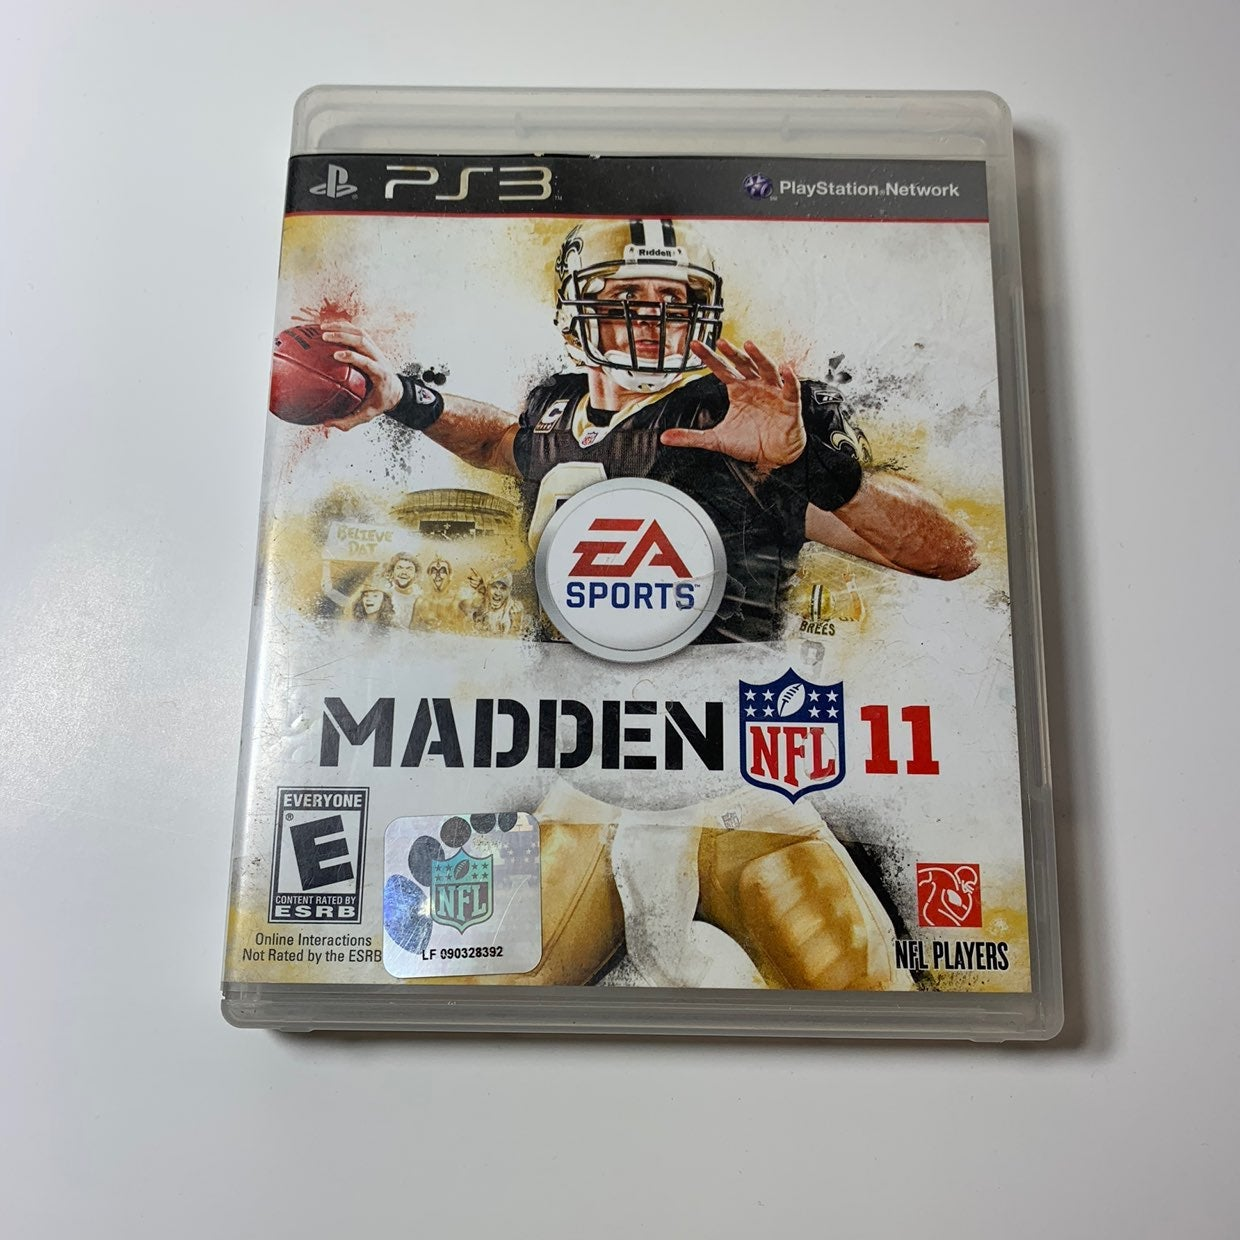 PS3 Maden NFL 11 game